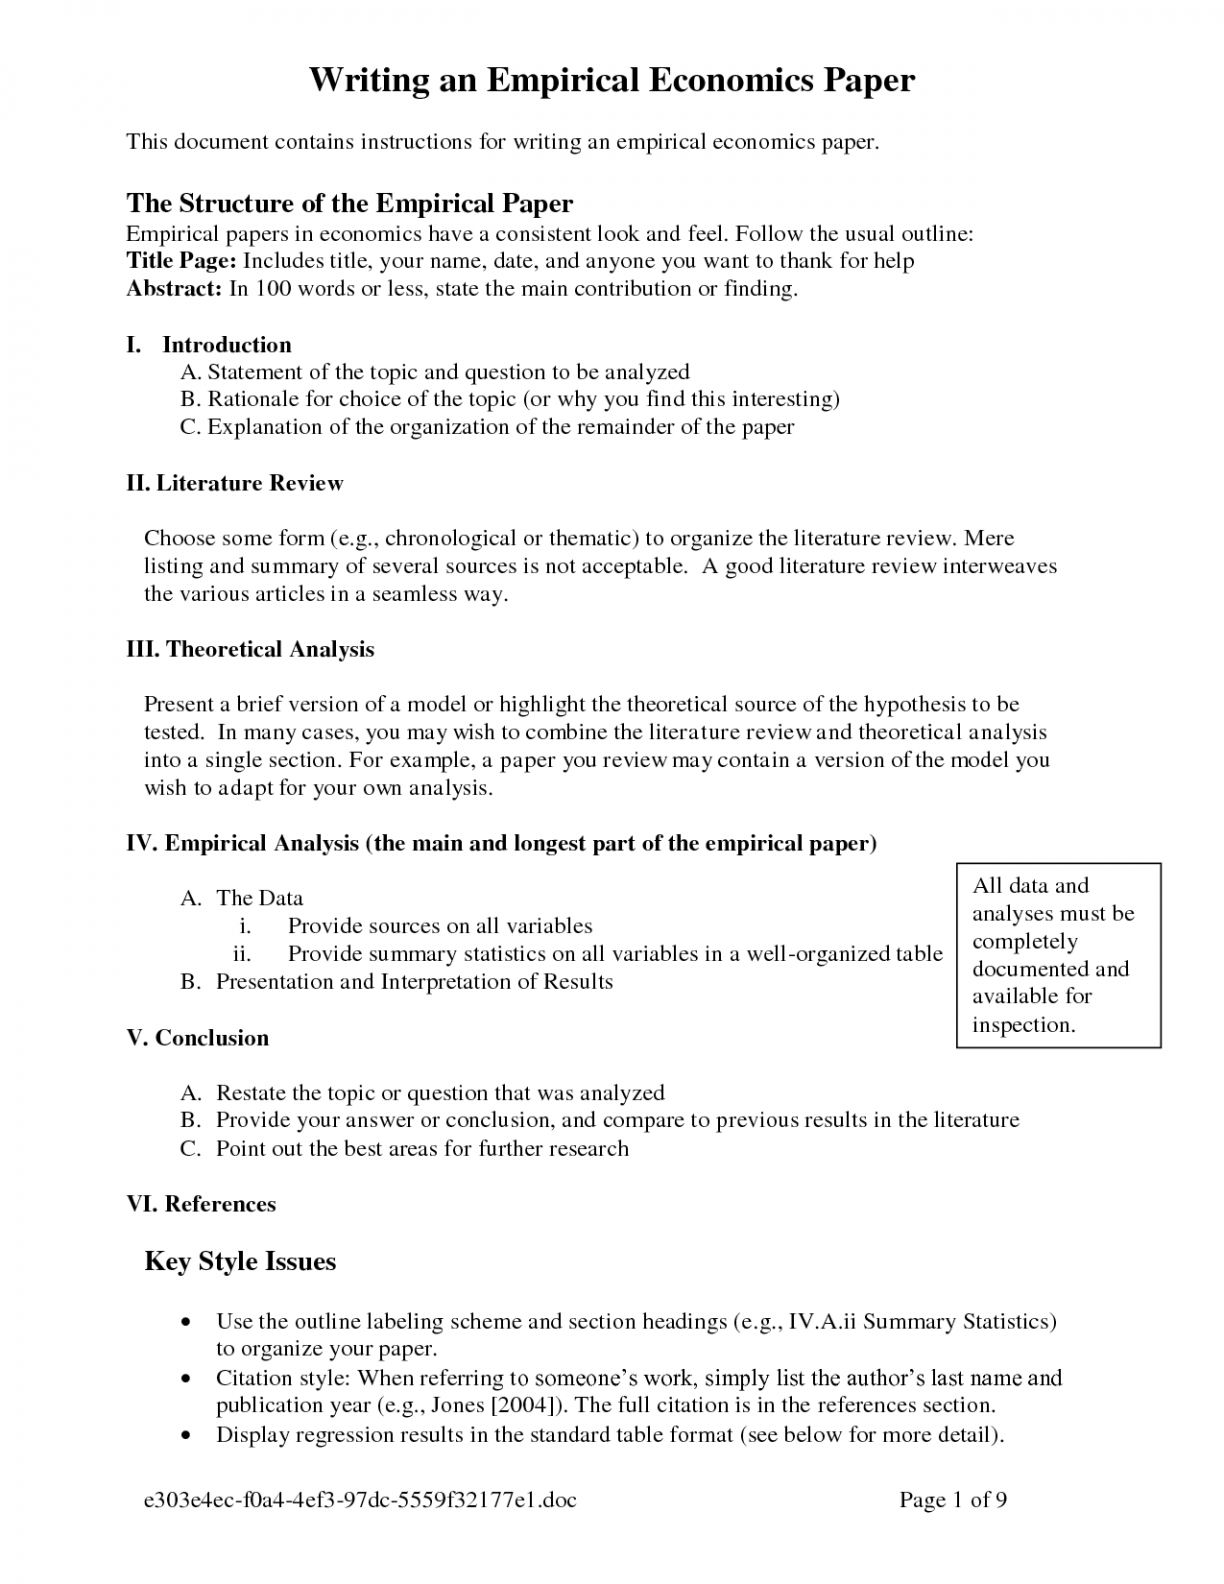 How to Approach Writing a Research Proposal